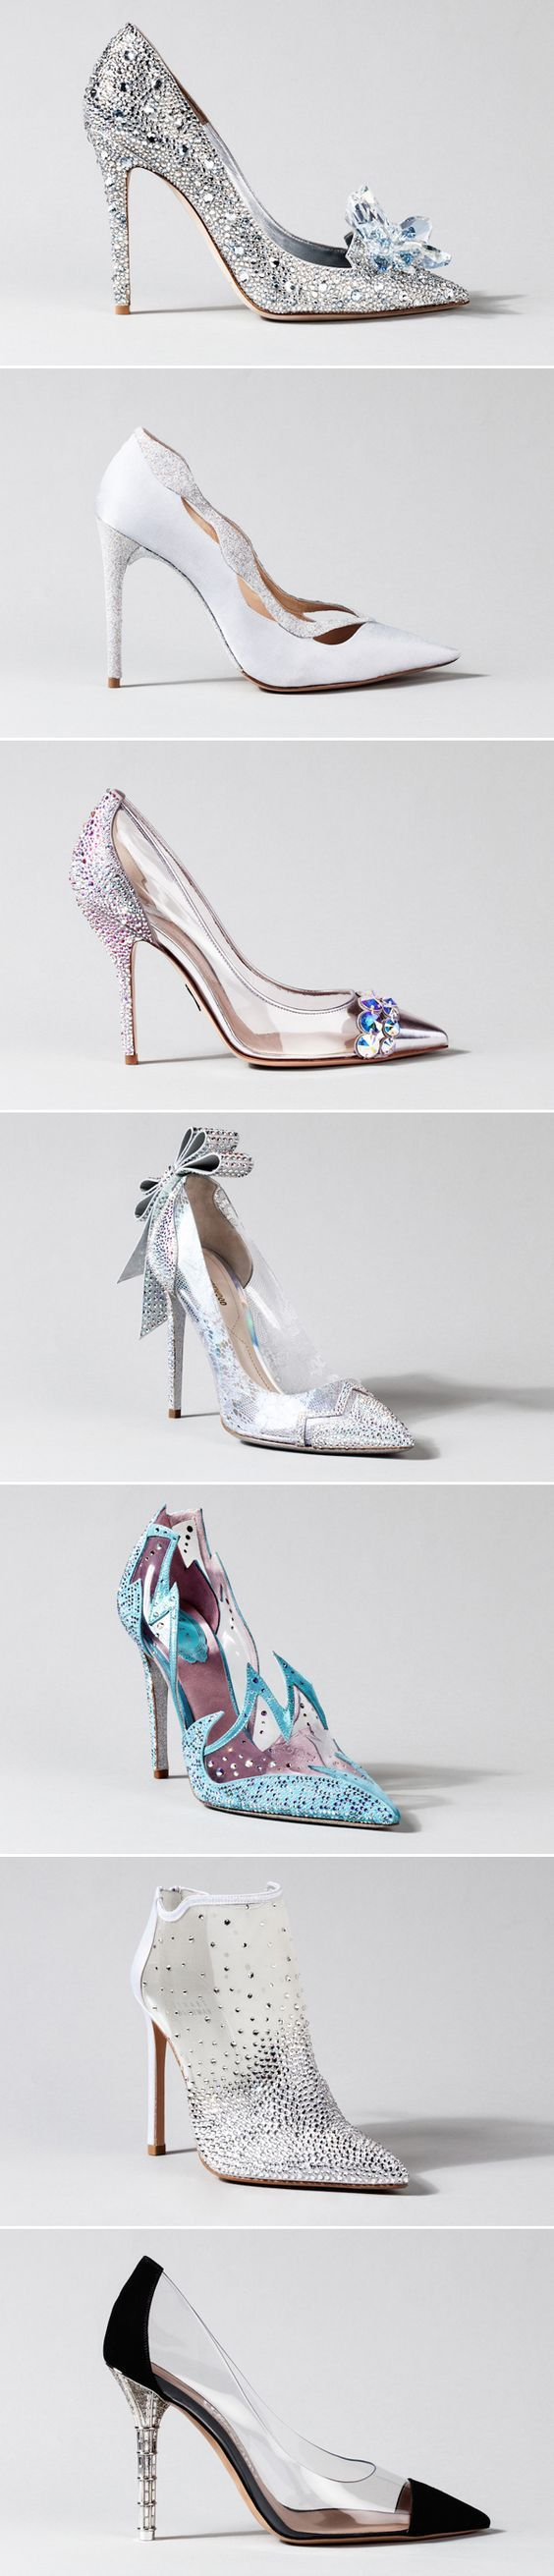 Cinderella Inspired Wedding Shoes / http://www.himisspuff.com/pretty-wedding-shoes/4/